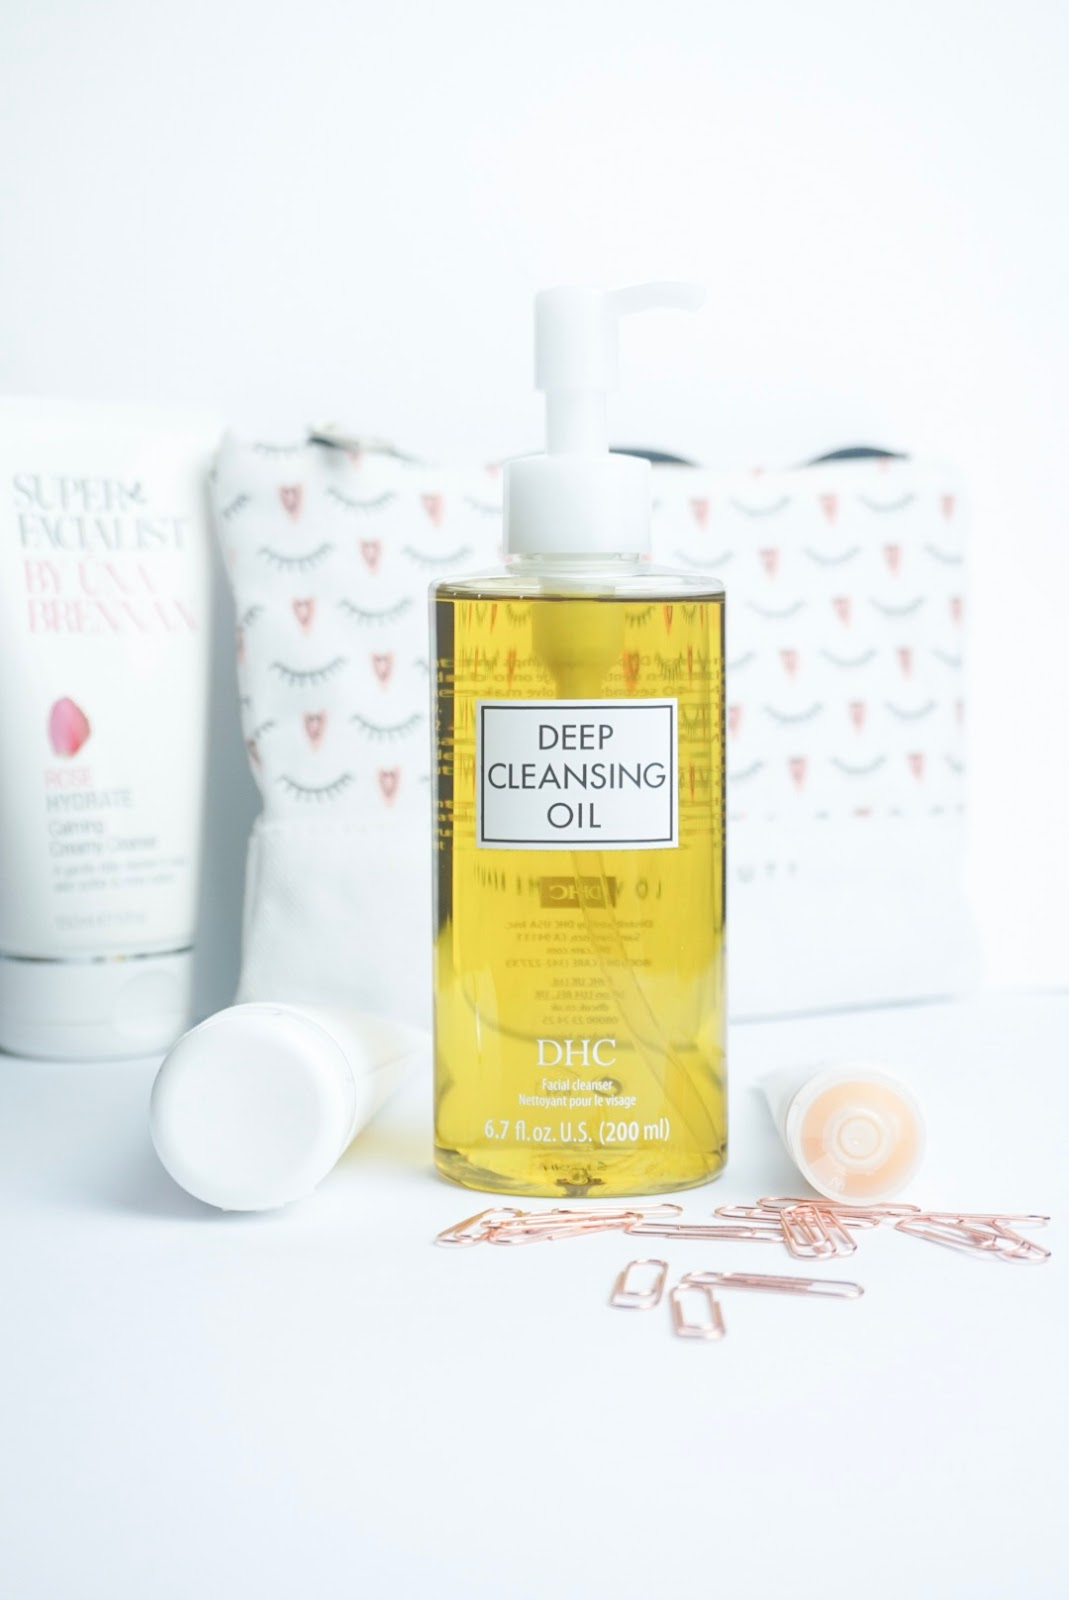 DHC Cleanser You Need In Your Skin Care Routine